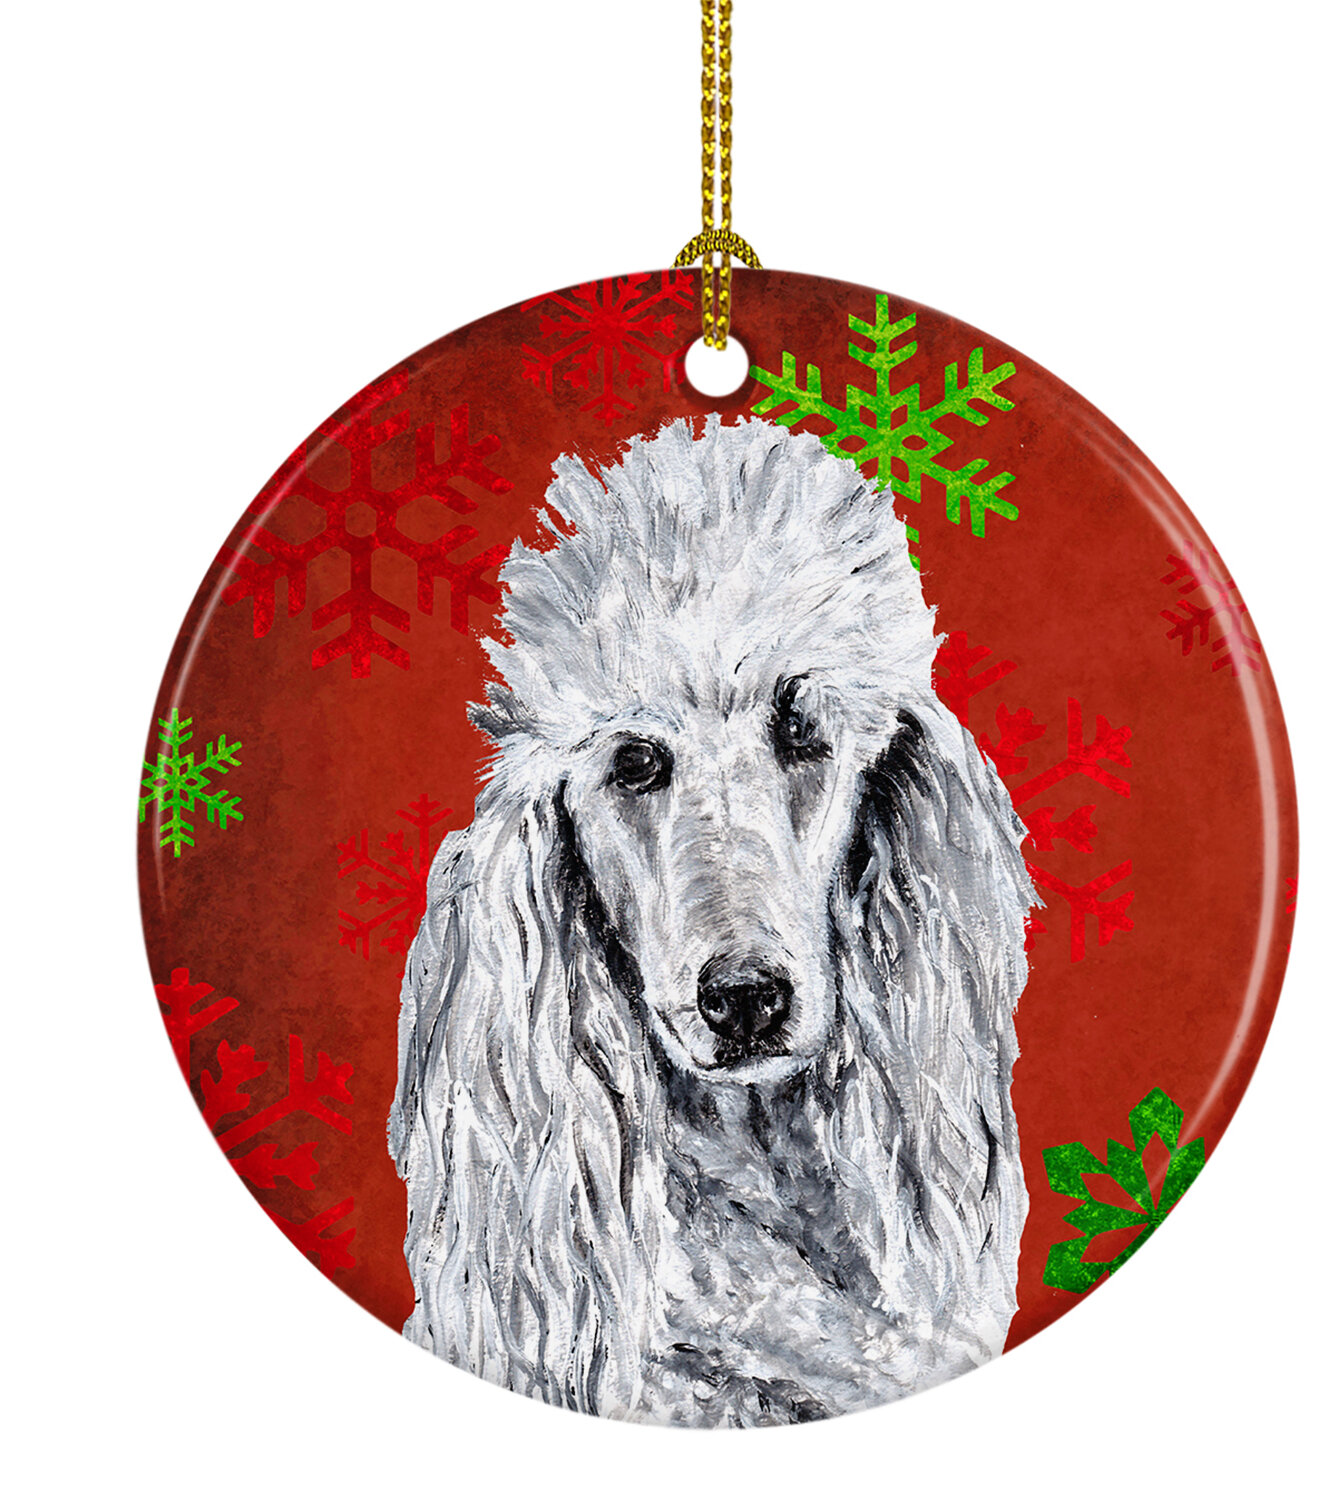 The Holiday Aisle Standard Poodle Snowflakes Holiday Ceramic Hanging Figurine Ornament Wayfair